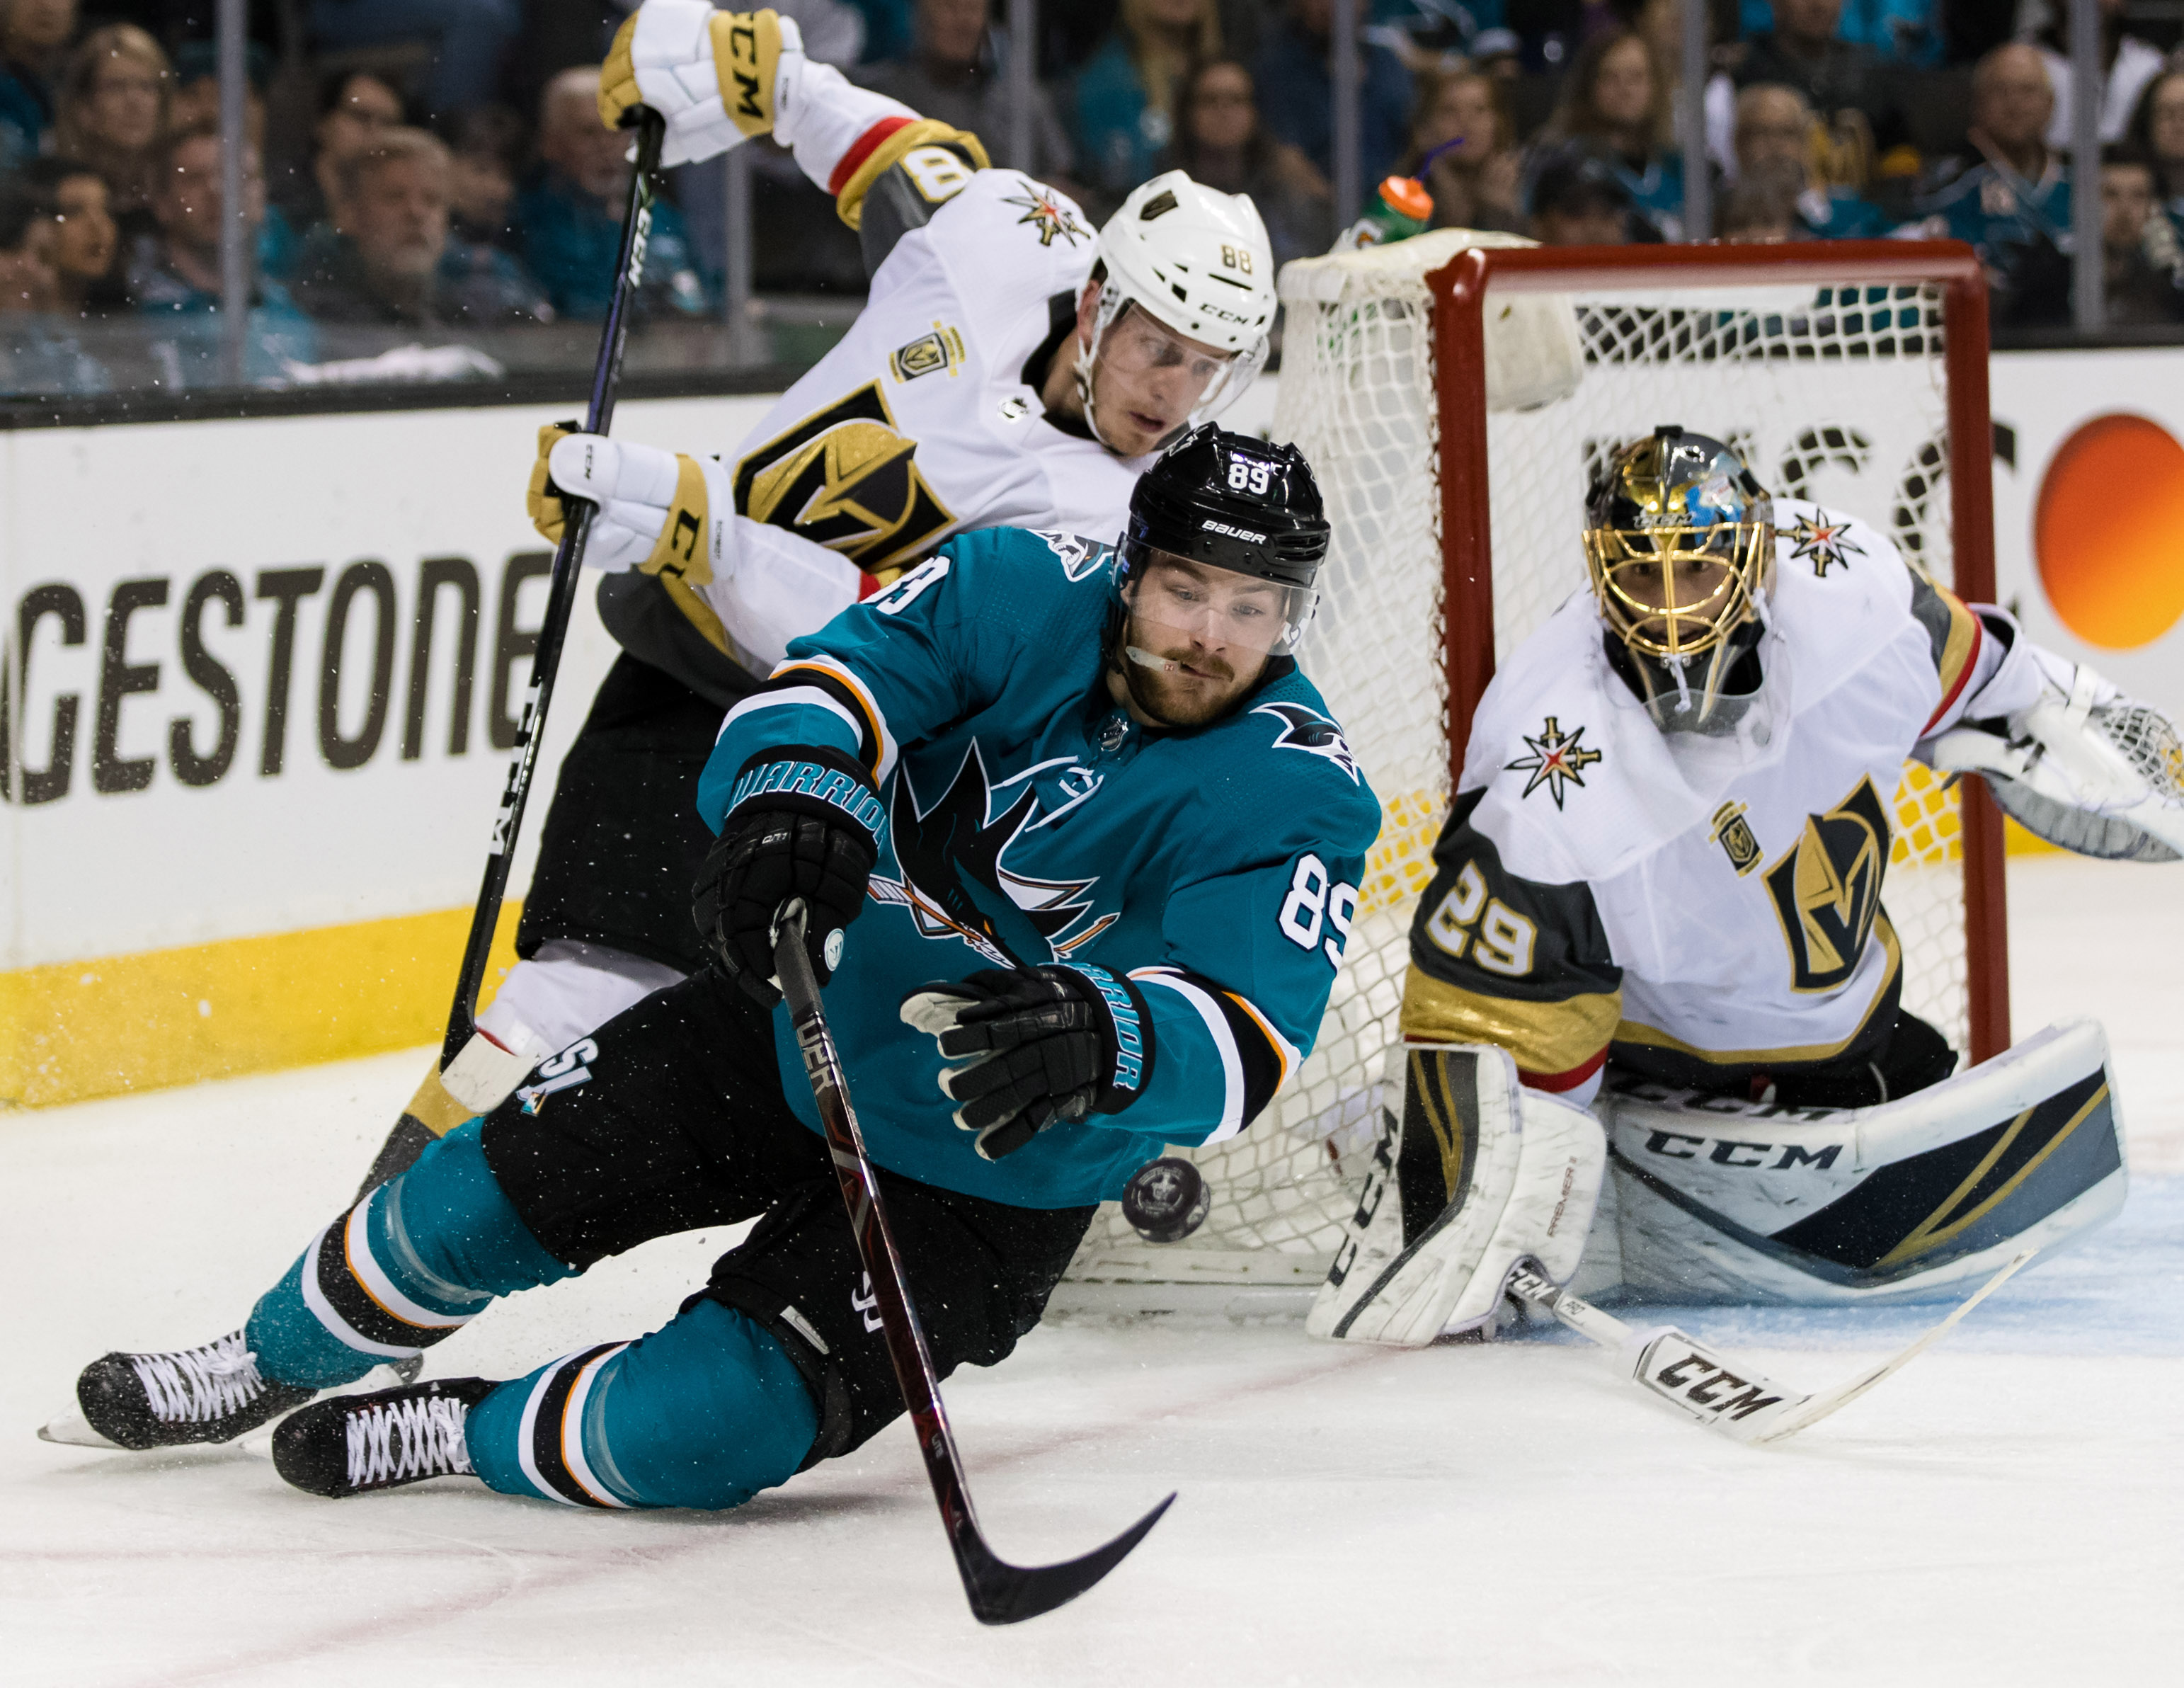 Apr 30, 2018; San Jose, CA, USA; San Jose Sharks left wing Mikkel Boedker (89) and Vegas Golden Knights defenseman Nate Schmidt (88) battle for possession in the second period of game three of the second round of the 2018 Stanley Cup Playoffs at SAP Cente